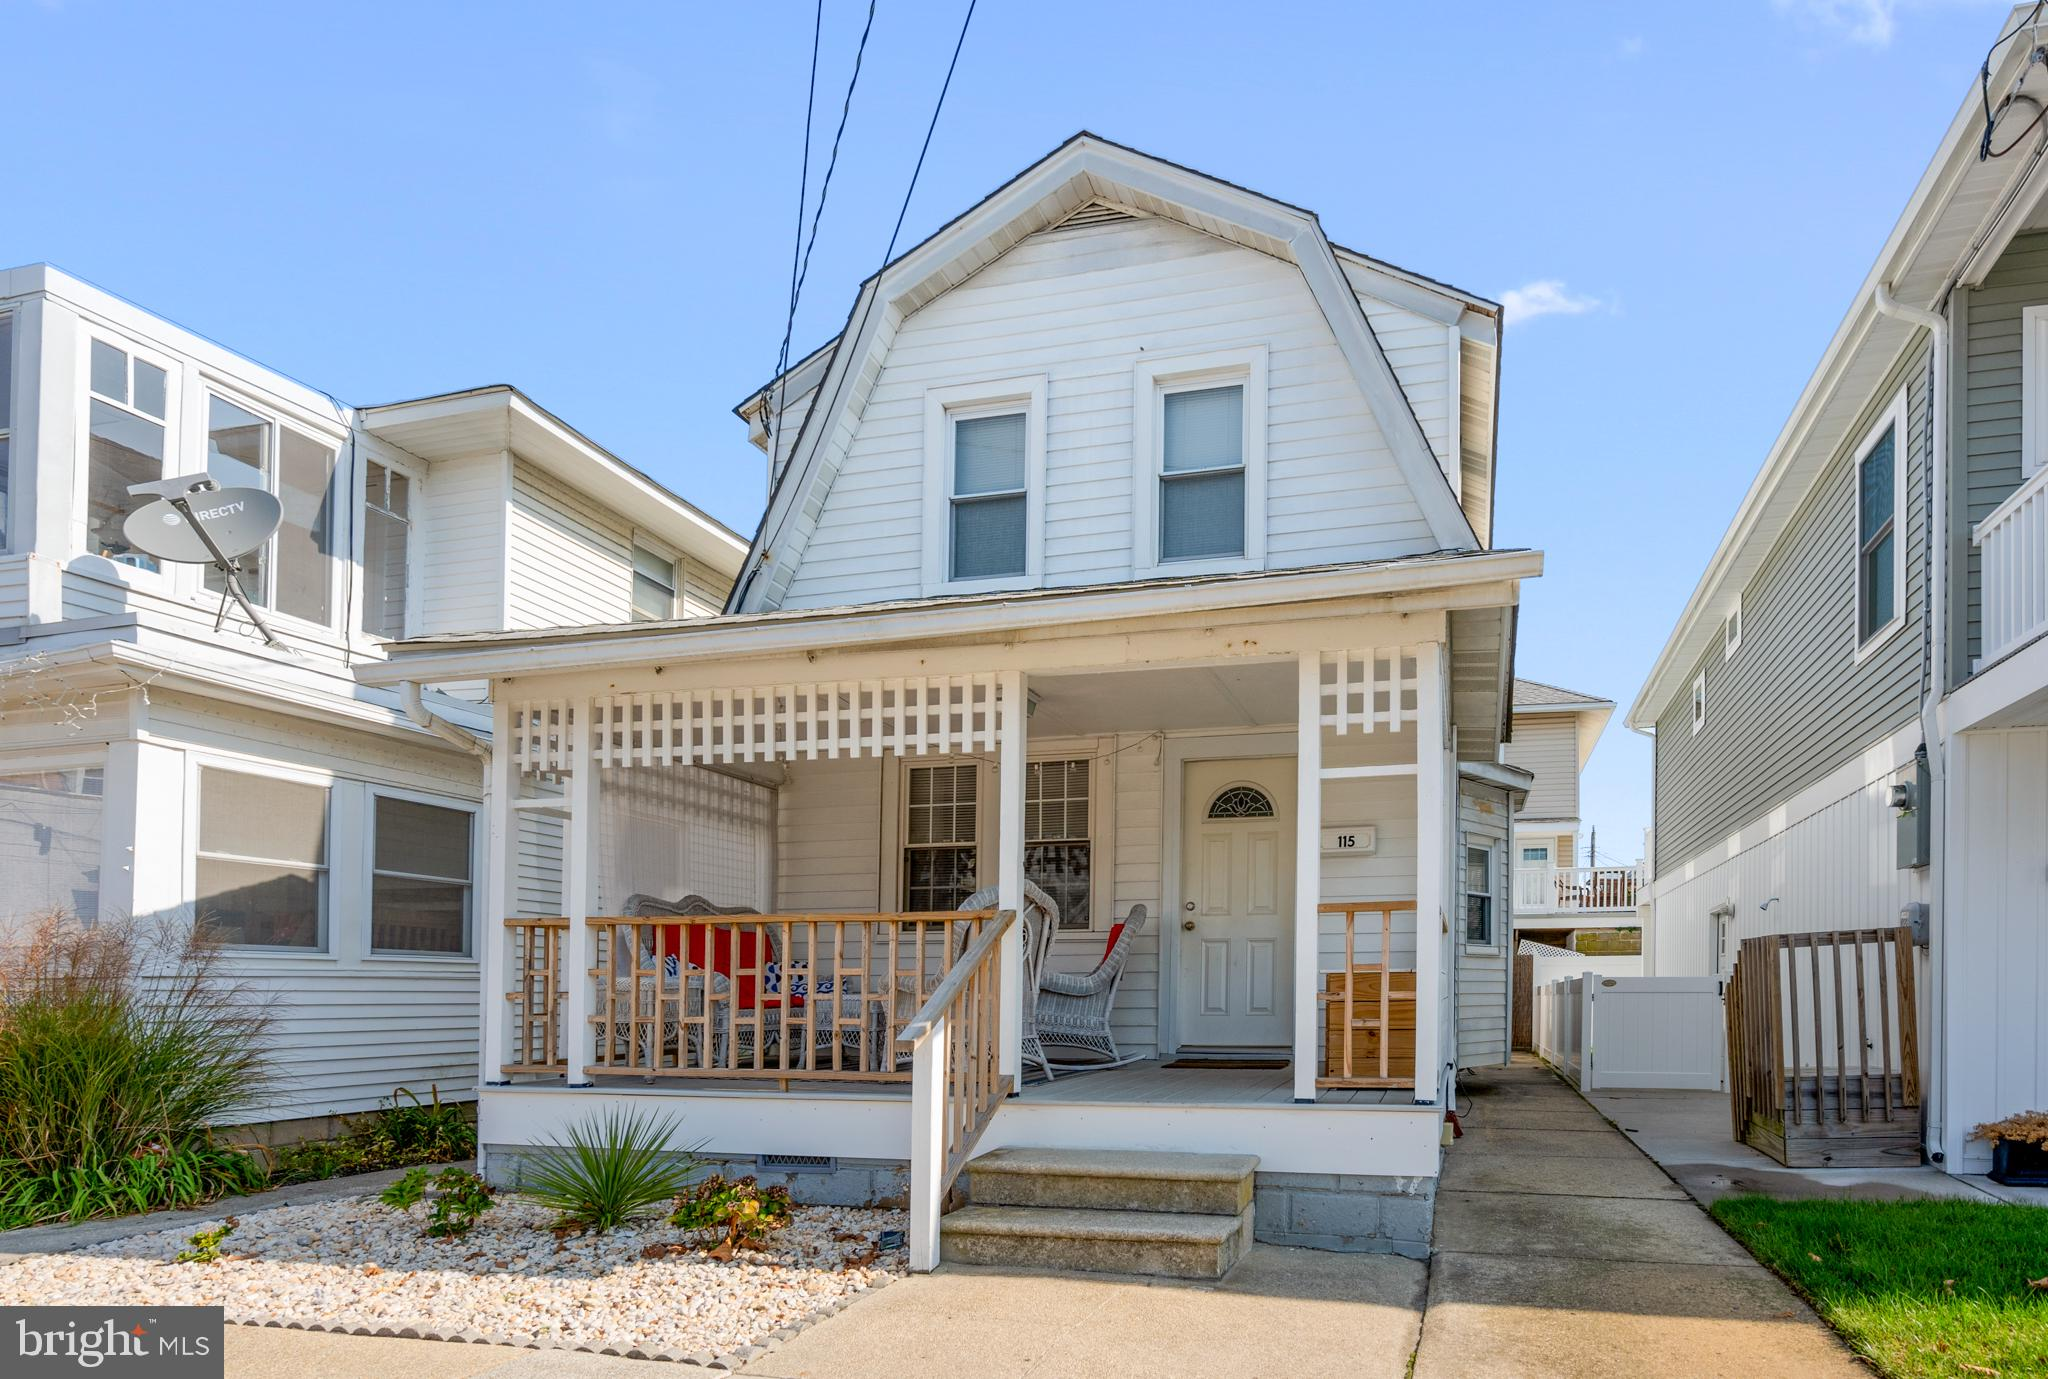 115 N PORTLAND AVENUE, VENTNOR CITY, NJ 08406